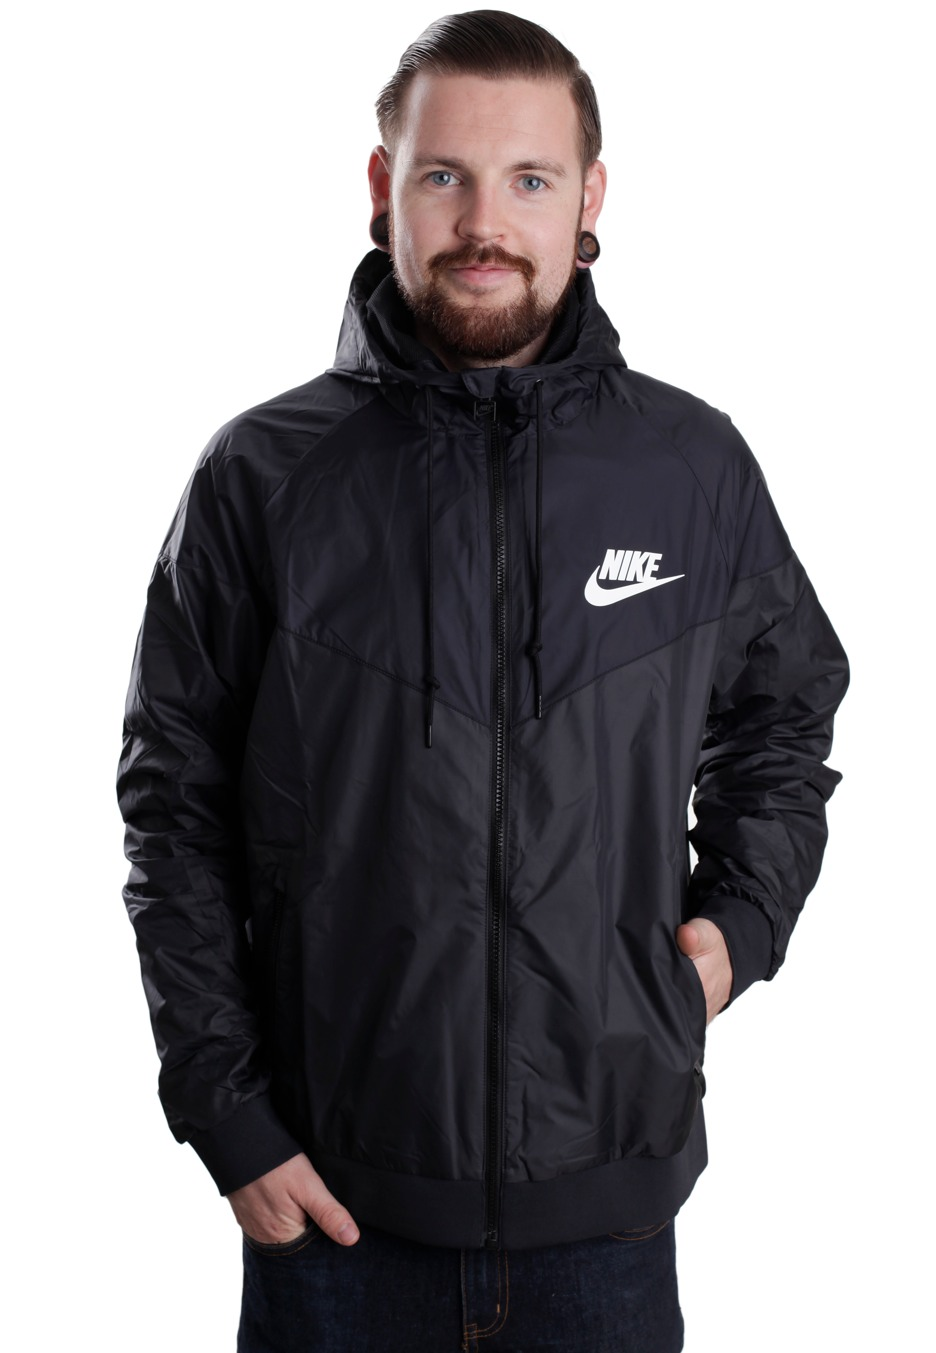 cdbc442ac9 Nike - The Windrunner Anthracite Black White - Windbreaker - Streetwear  Shop - Impericon.com Worldwide